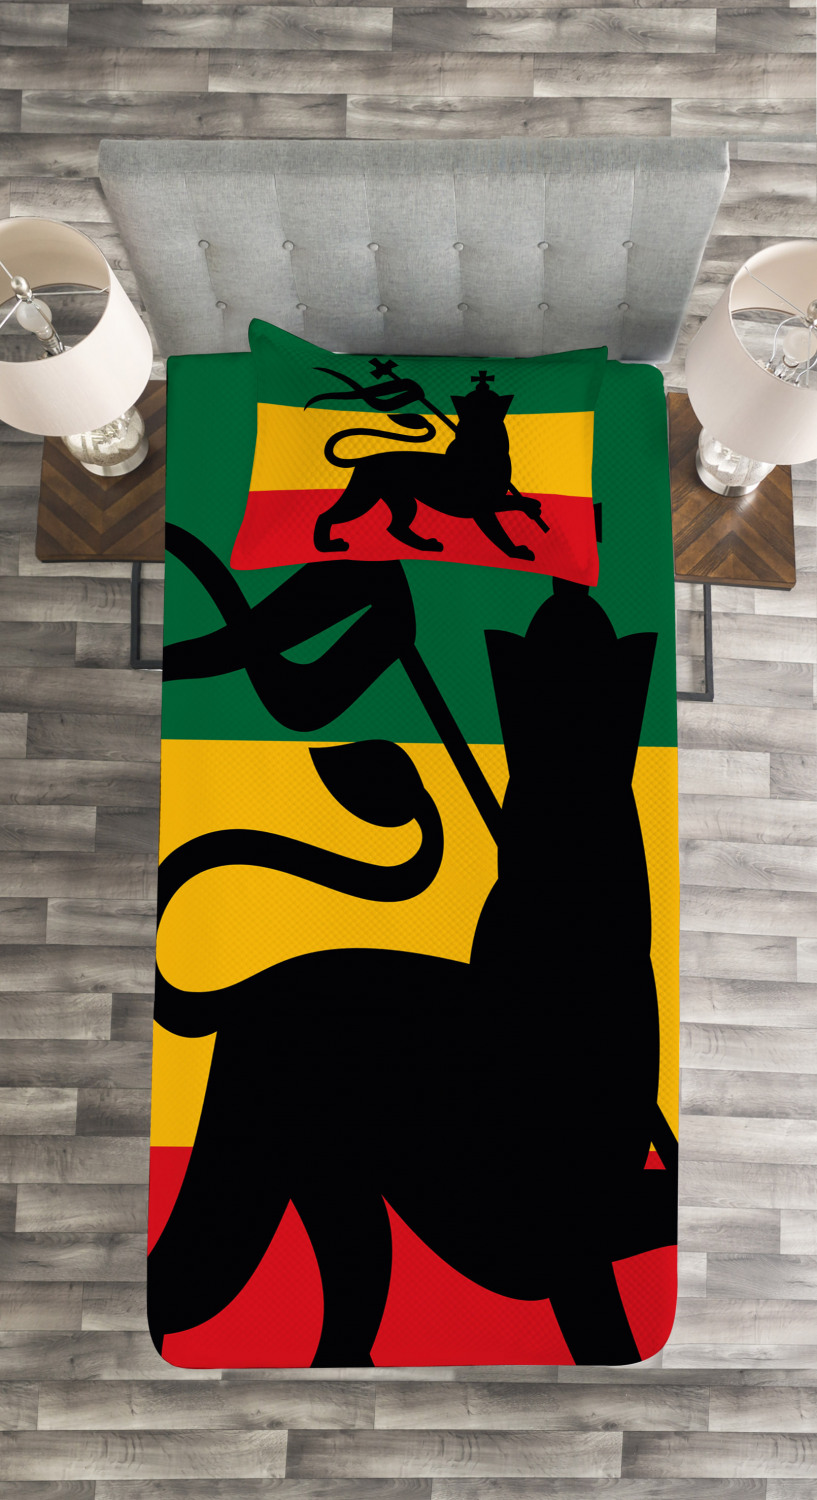 Judah Lion Reggae Flag Print Rasta Quilted Bedspread /& Pillow Shams Set